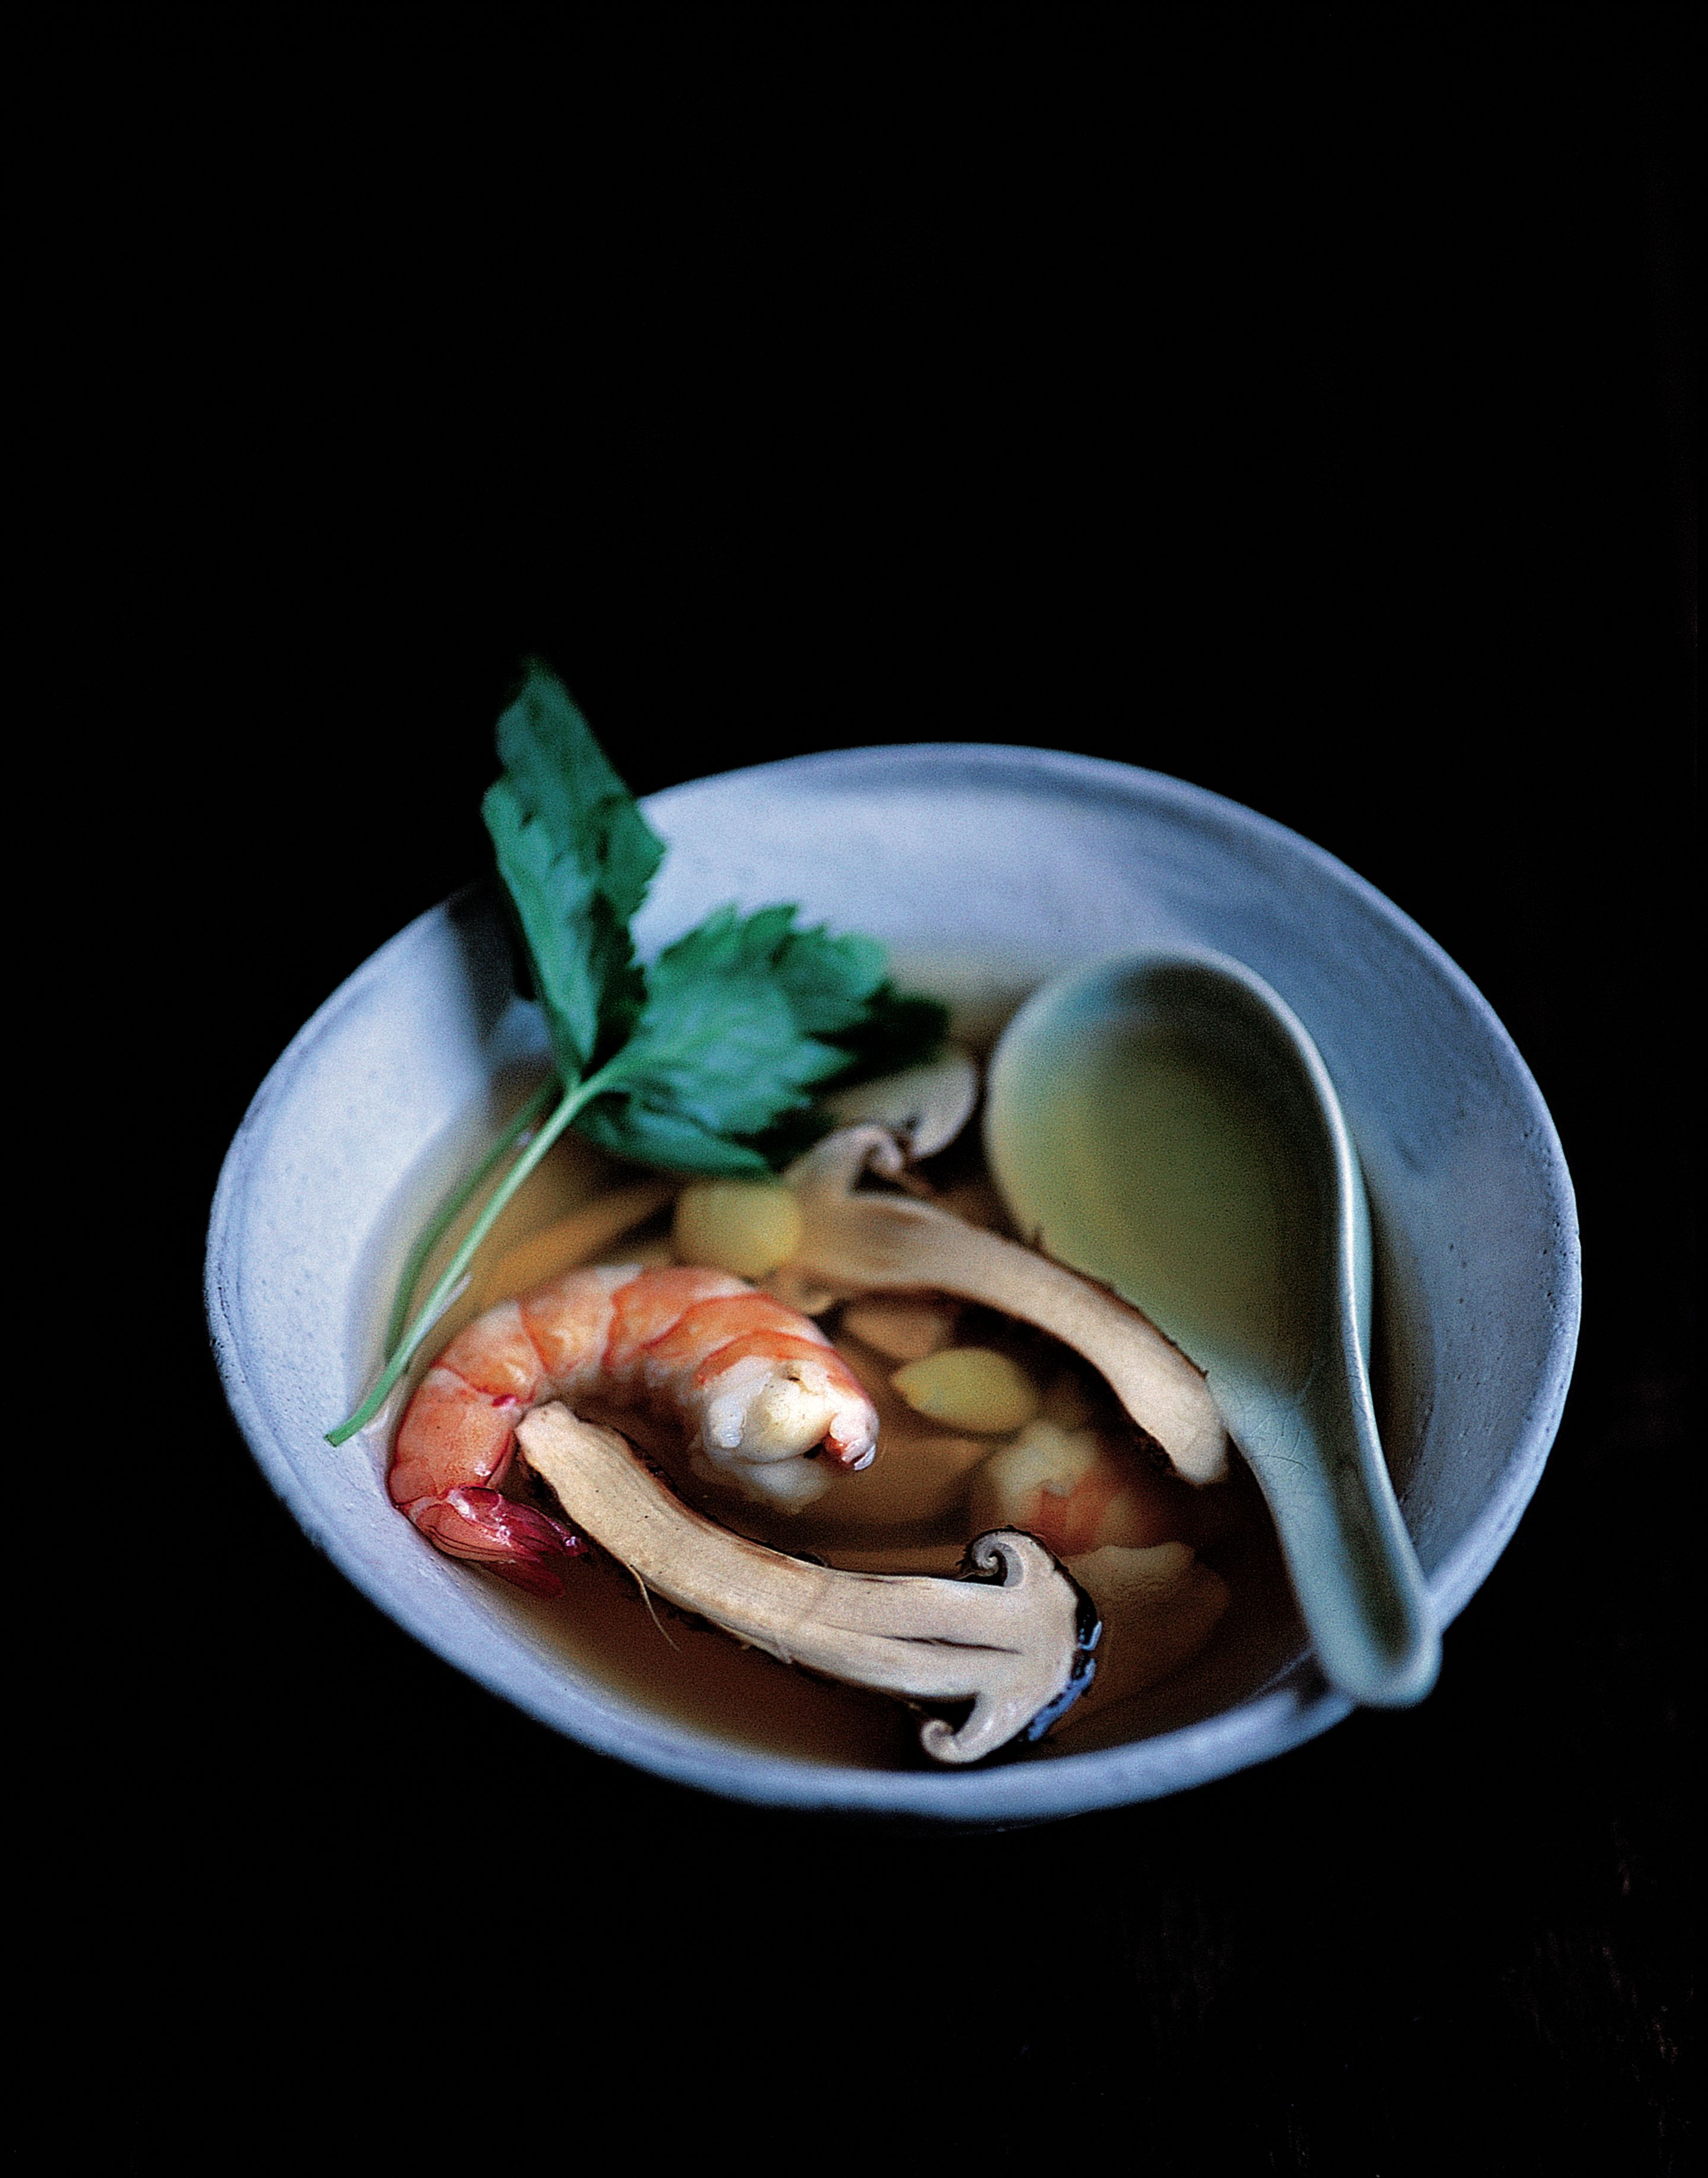 Hot Thai soup of oyster mushrooms and prawns